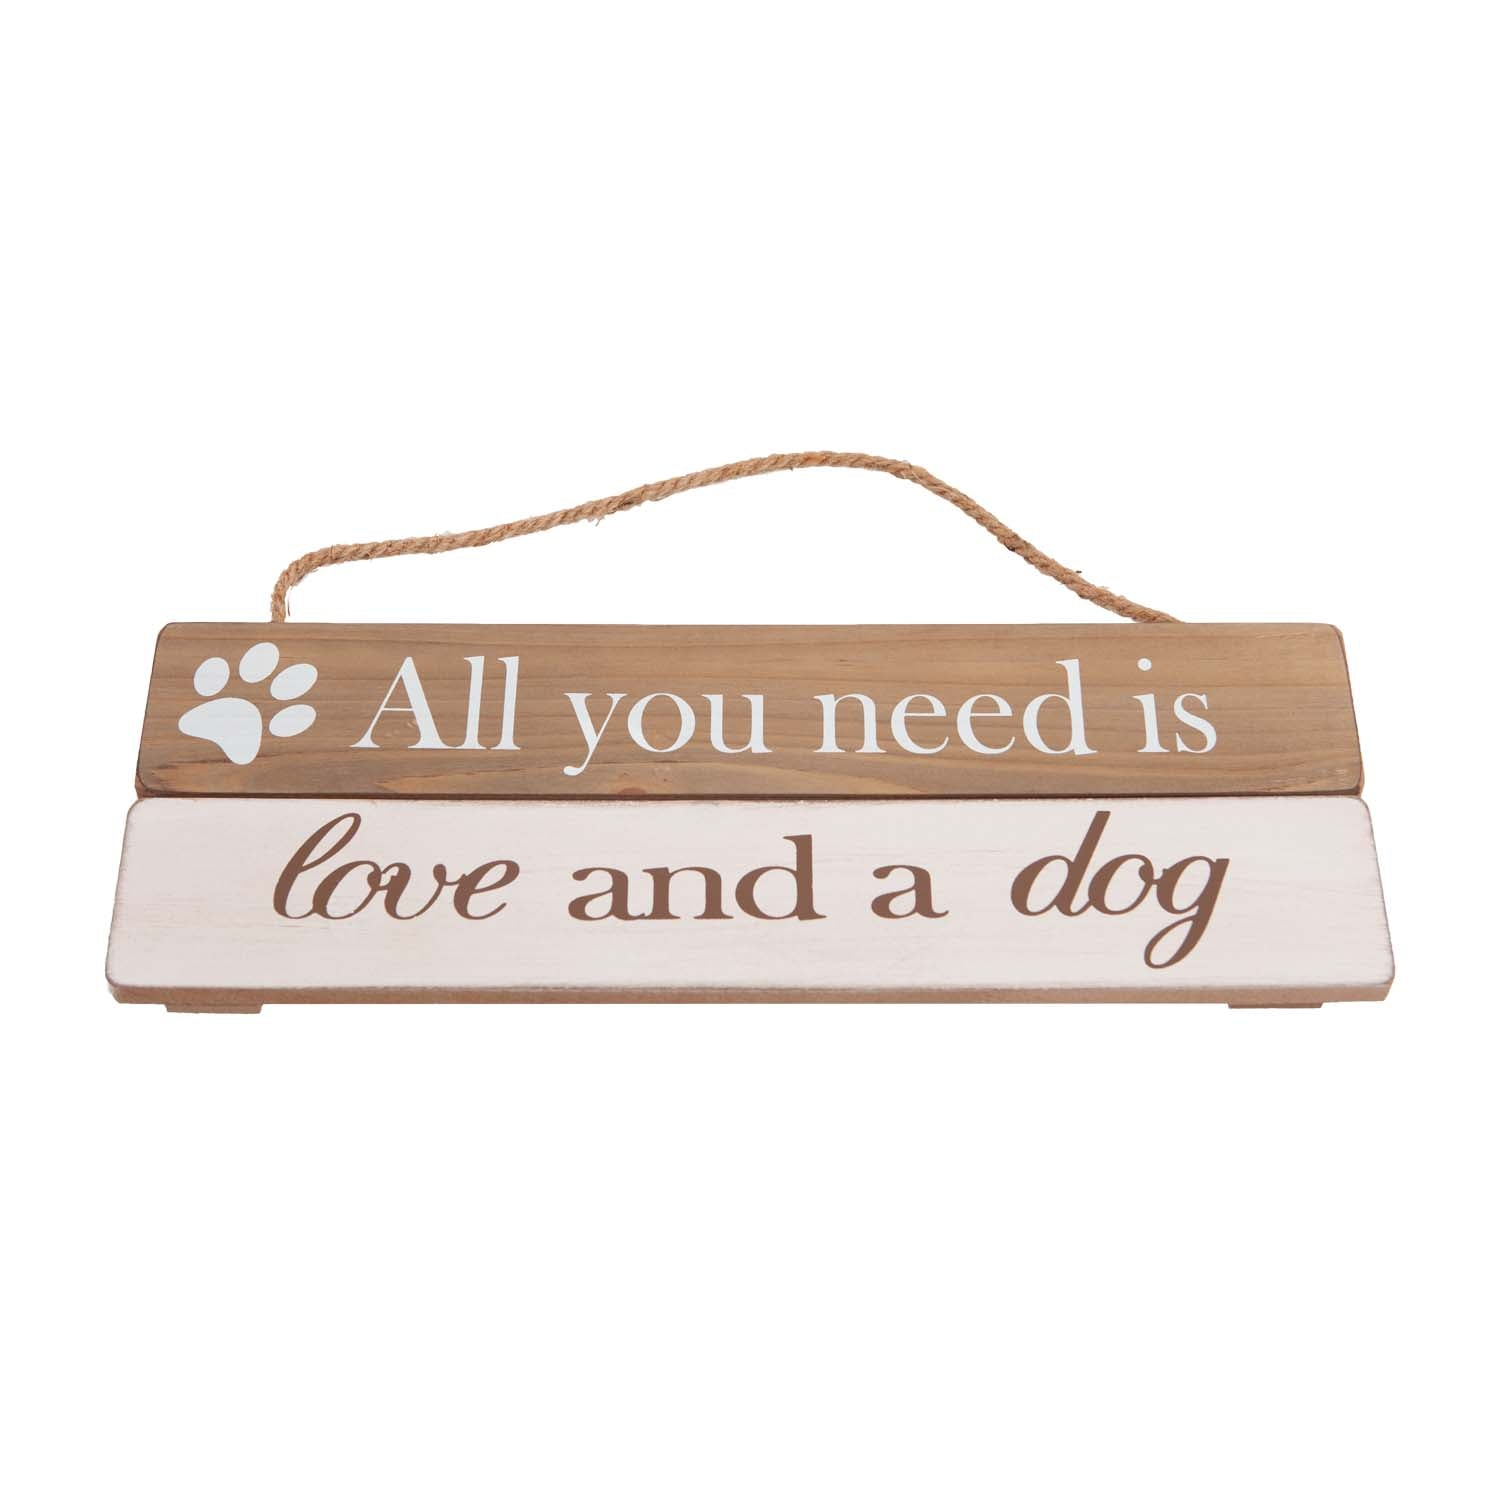 Dog Lover Gifts available at Dog Krazy Gifts – All You Need Is Love And A Dog Soft Wood Sign, Just Part Of Our Collection Of Signs Available At www.dogkrazygifts.co.uk